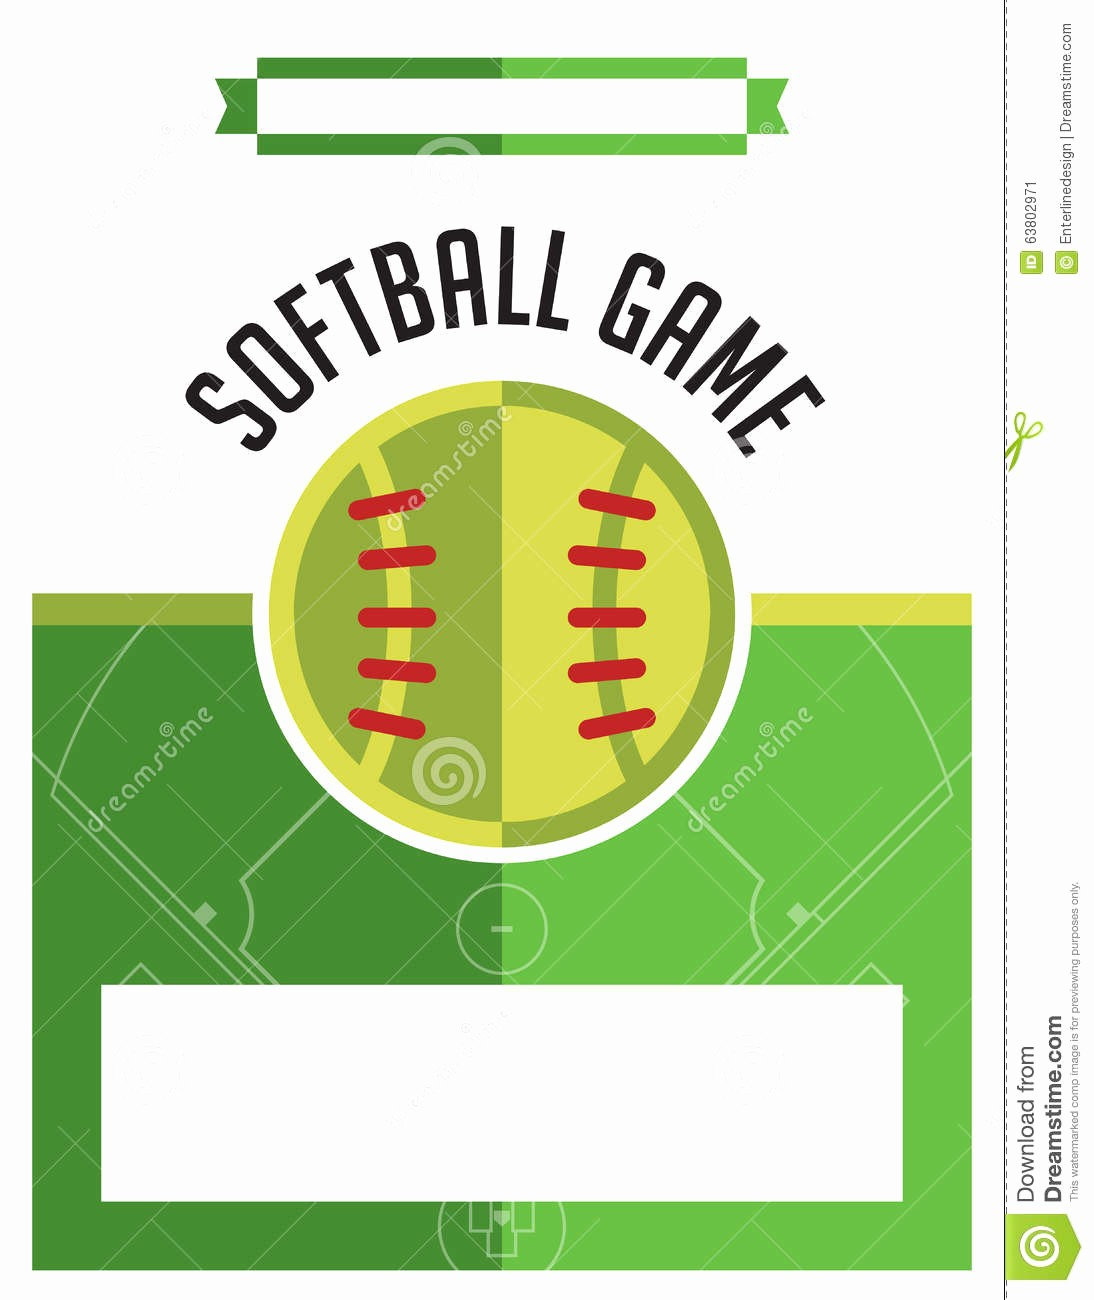 Softball tournament Flyer Template Free Best Of softball Game Flyer Illustration Stock Vector Image